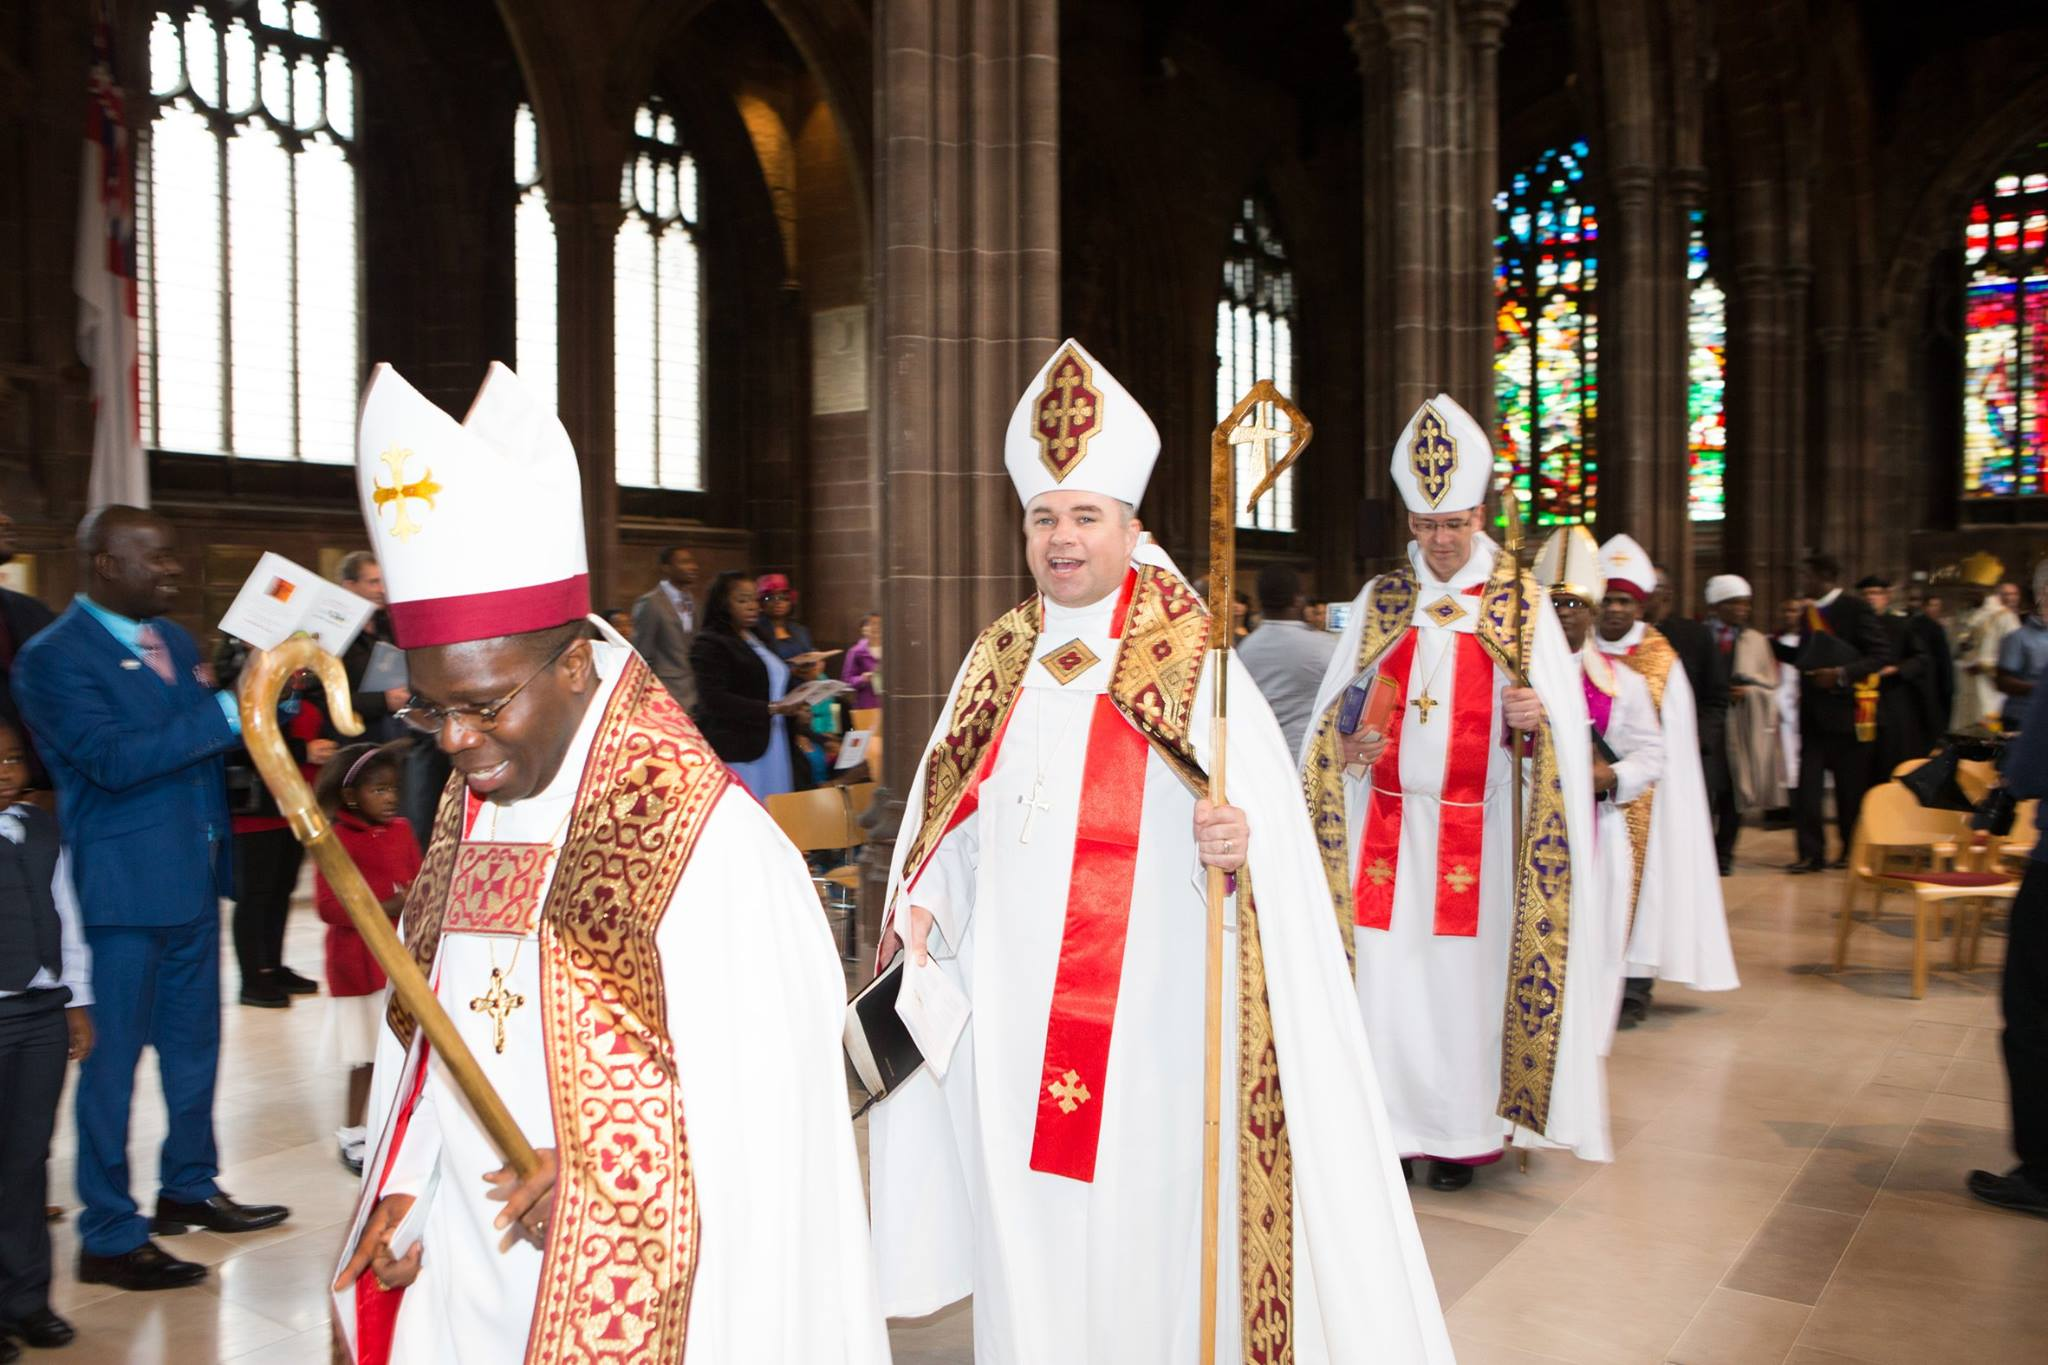 Bishop Evans' Consecration